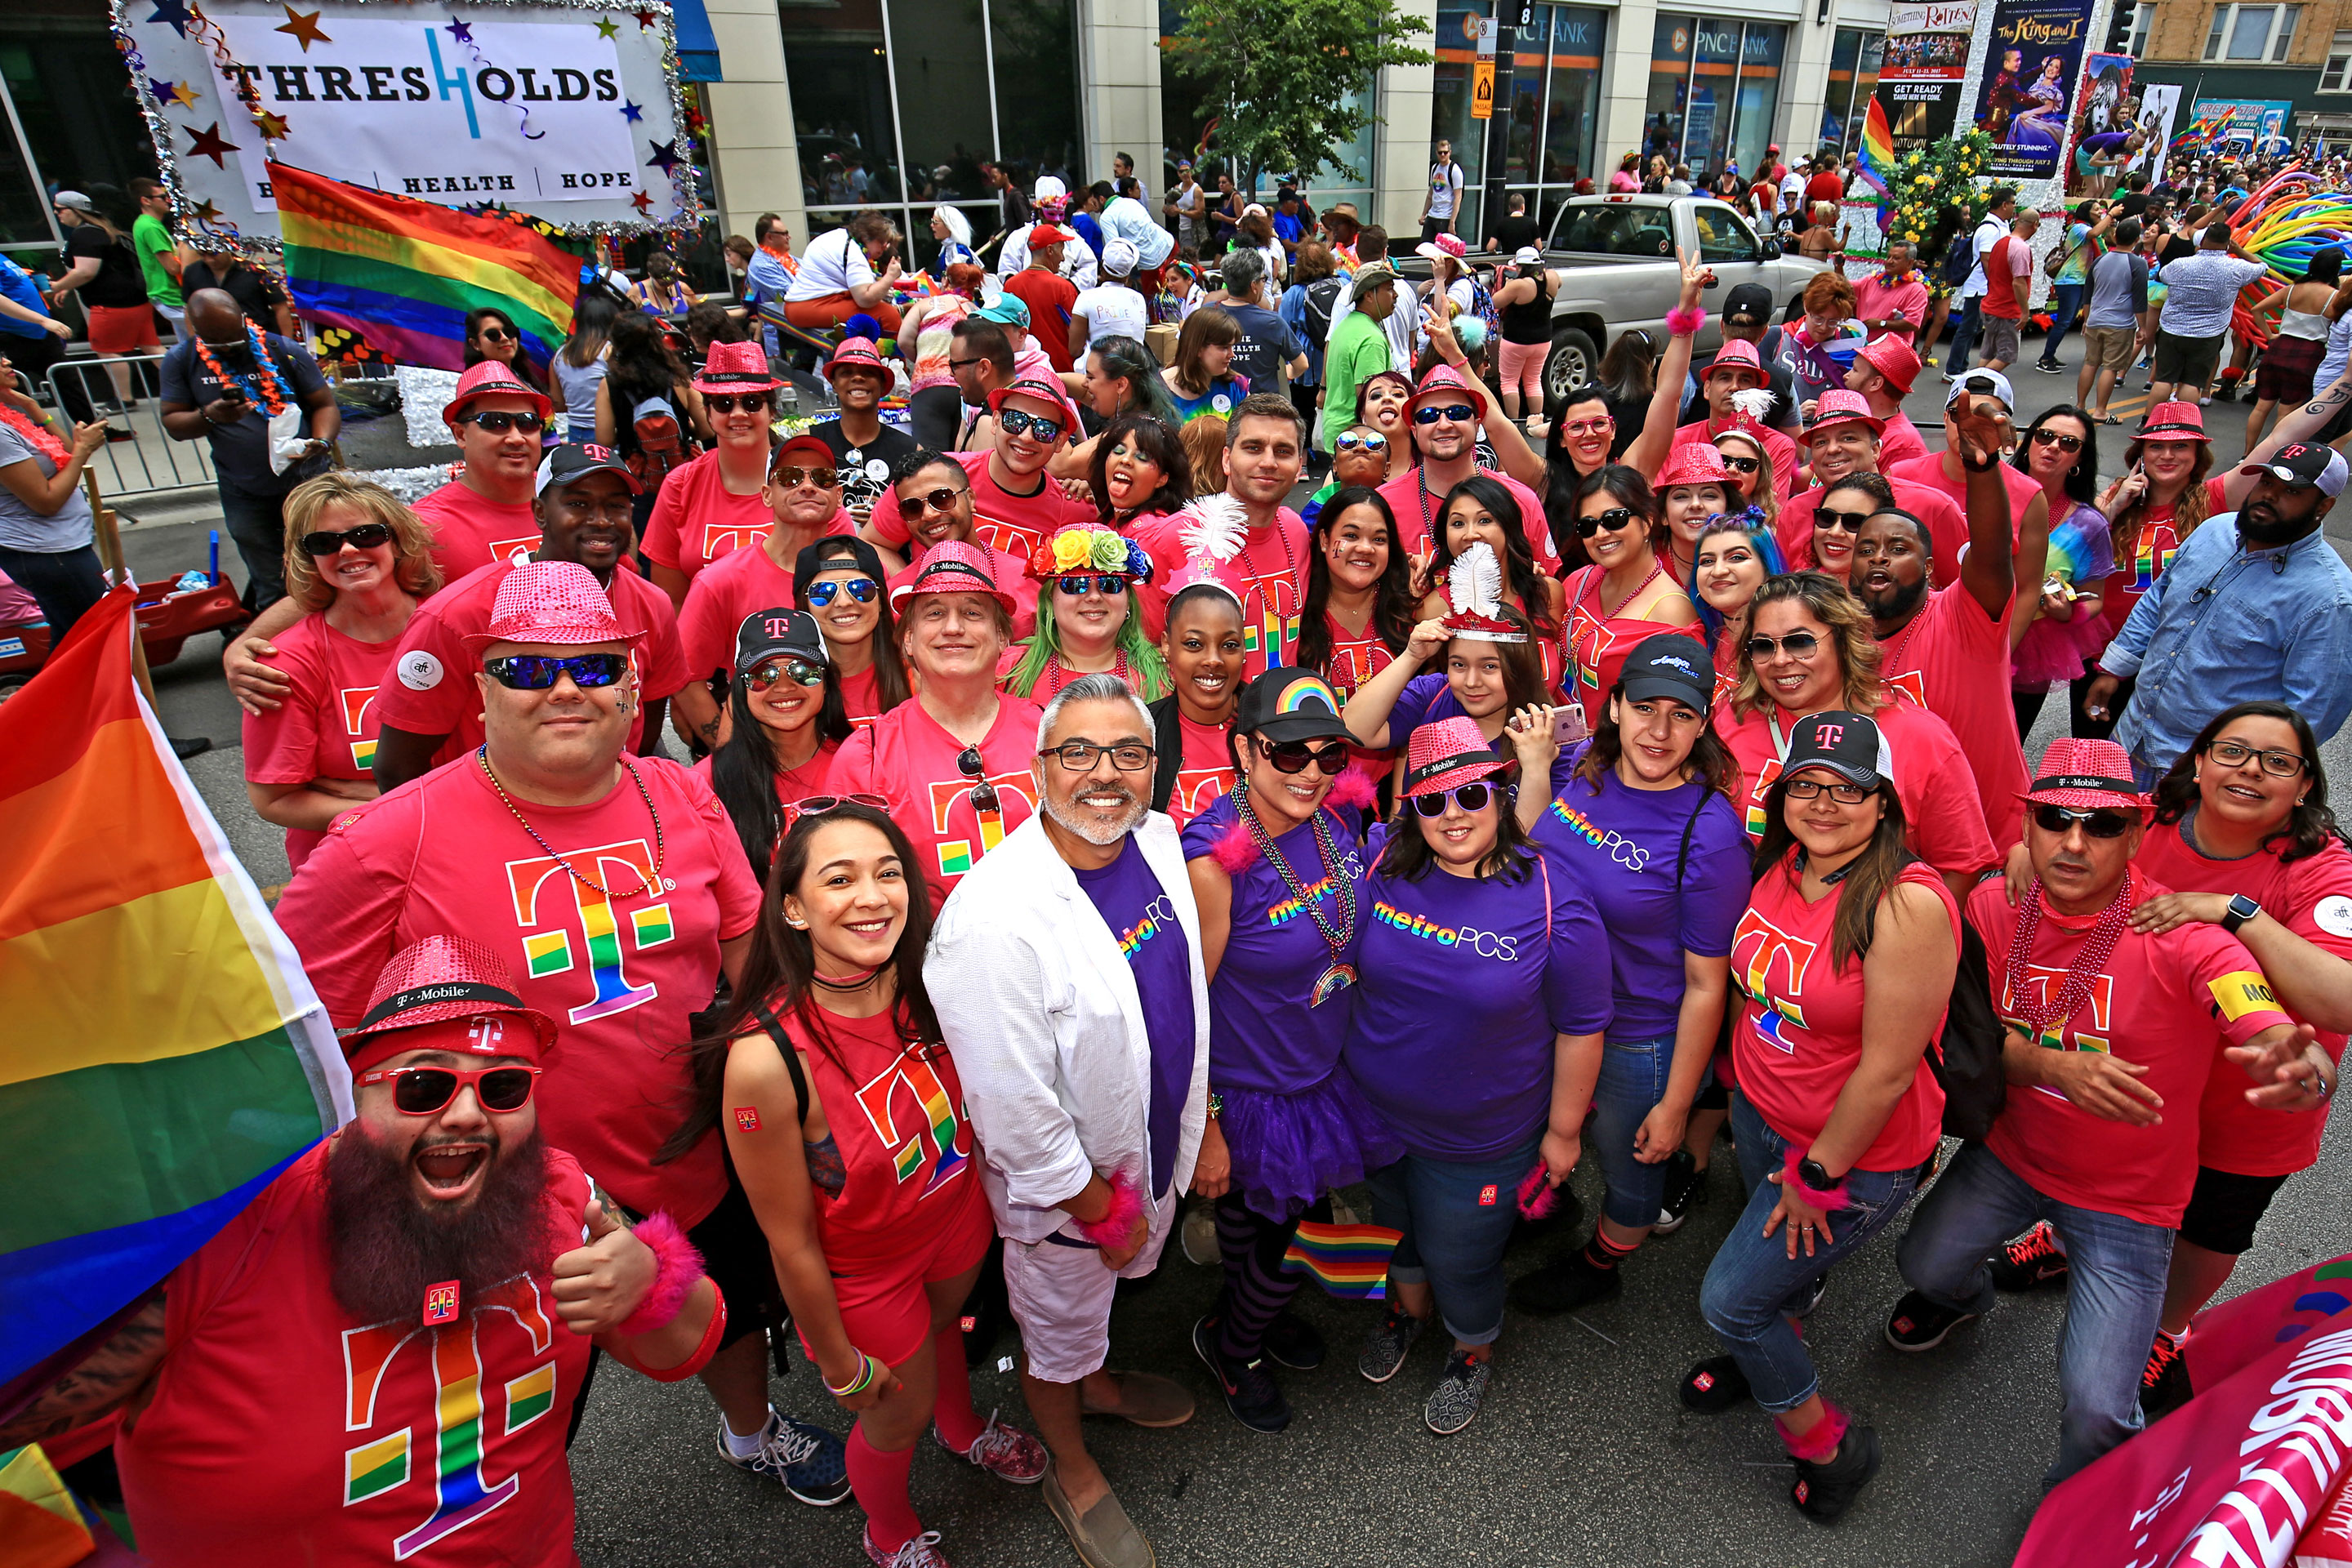 T-Mobile employees, friends and family during Chicago Pride on June 25, 2017. T-Mobile offered spousal benefits and insurance coverage for gay couples even when t wasn't legally required to, and is a major sponsor at several Pride events.